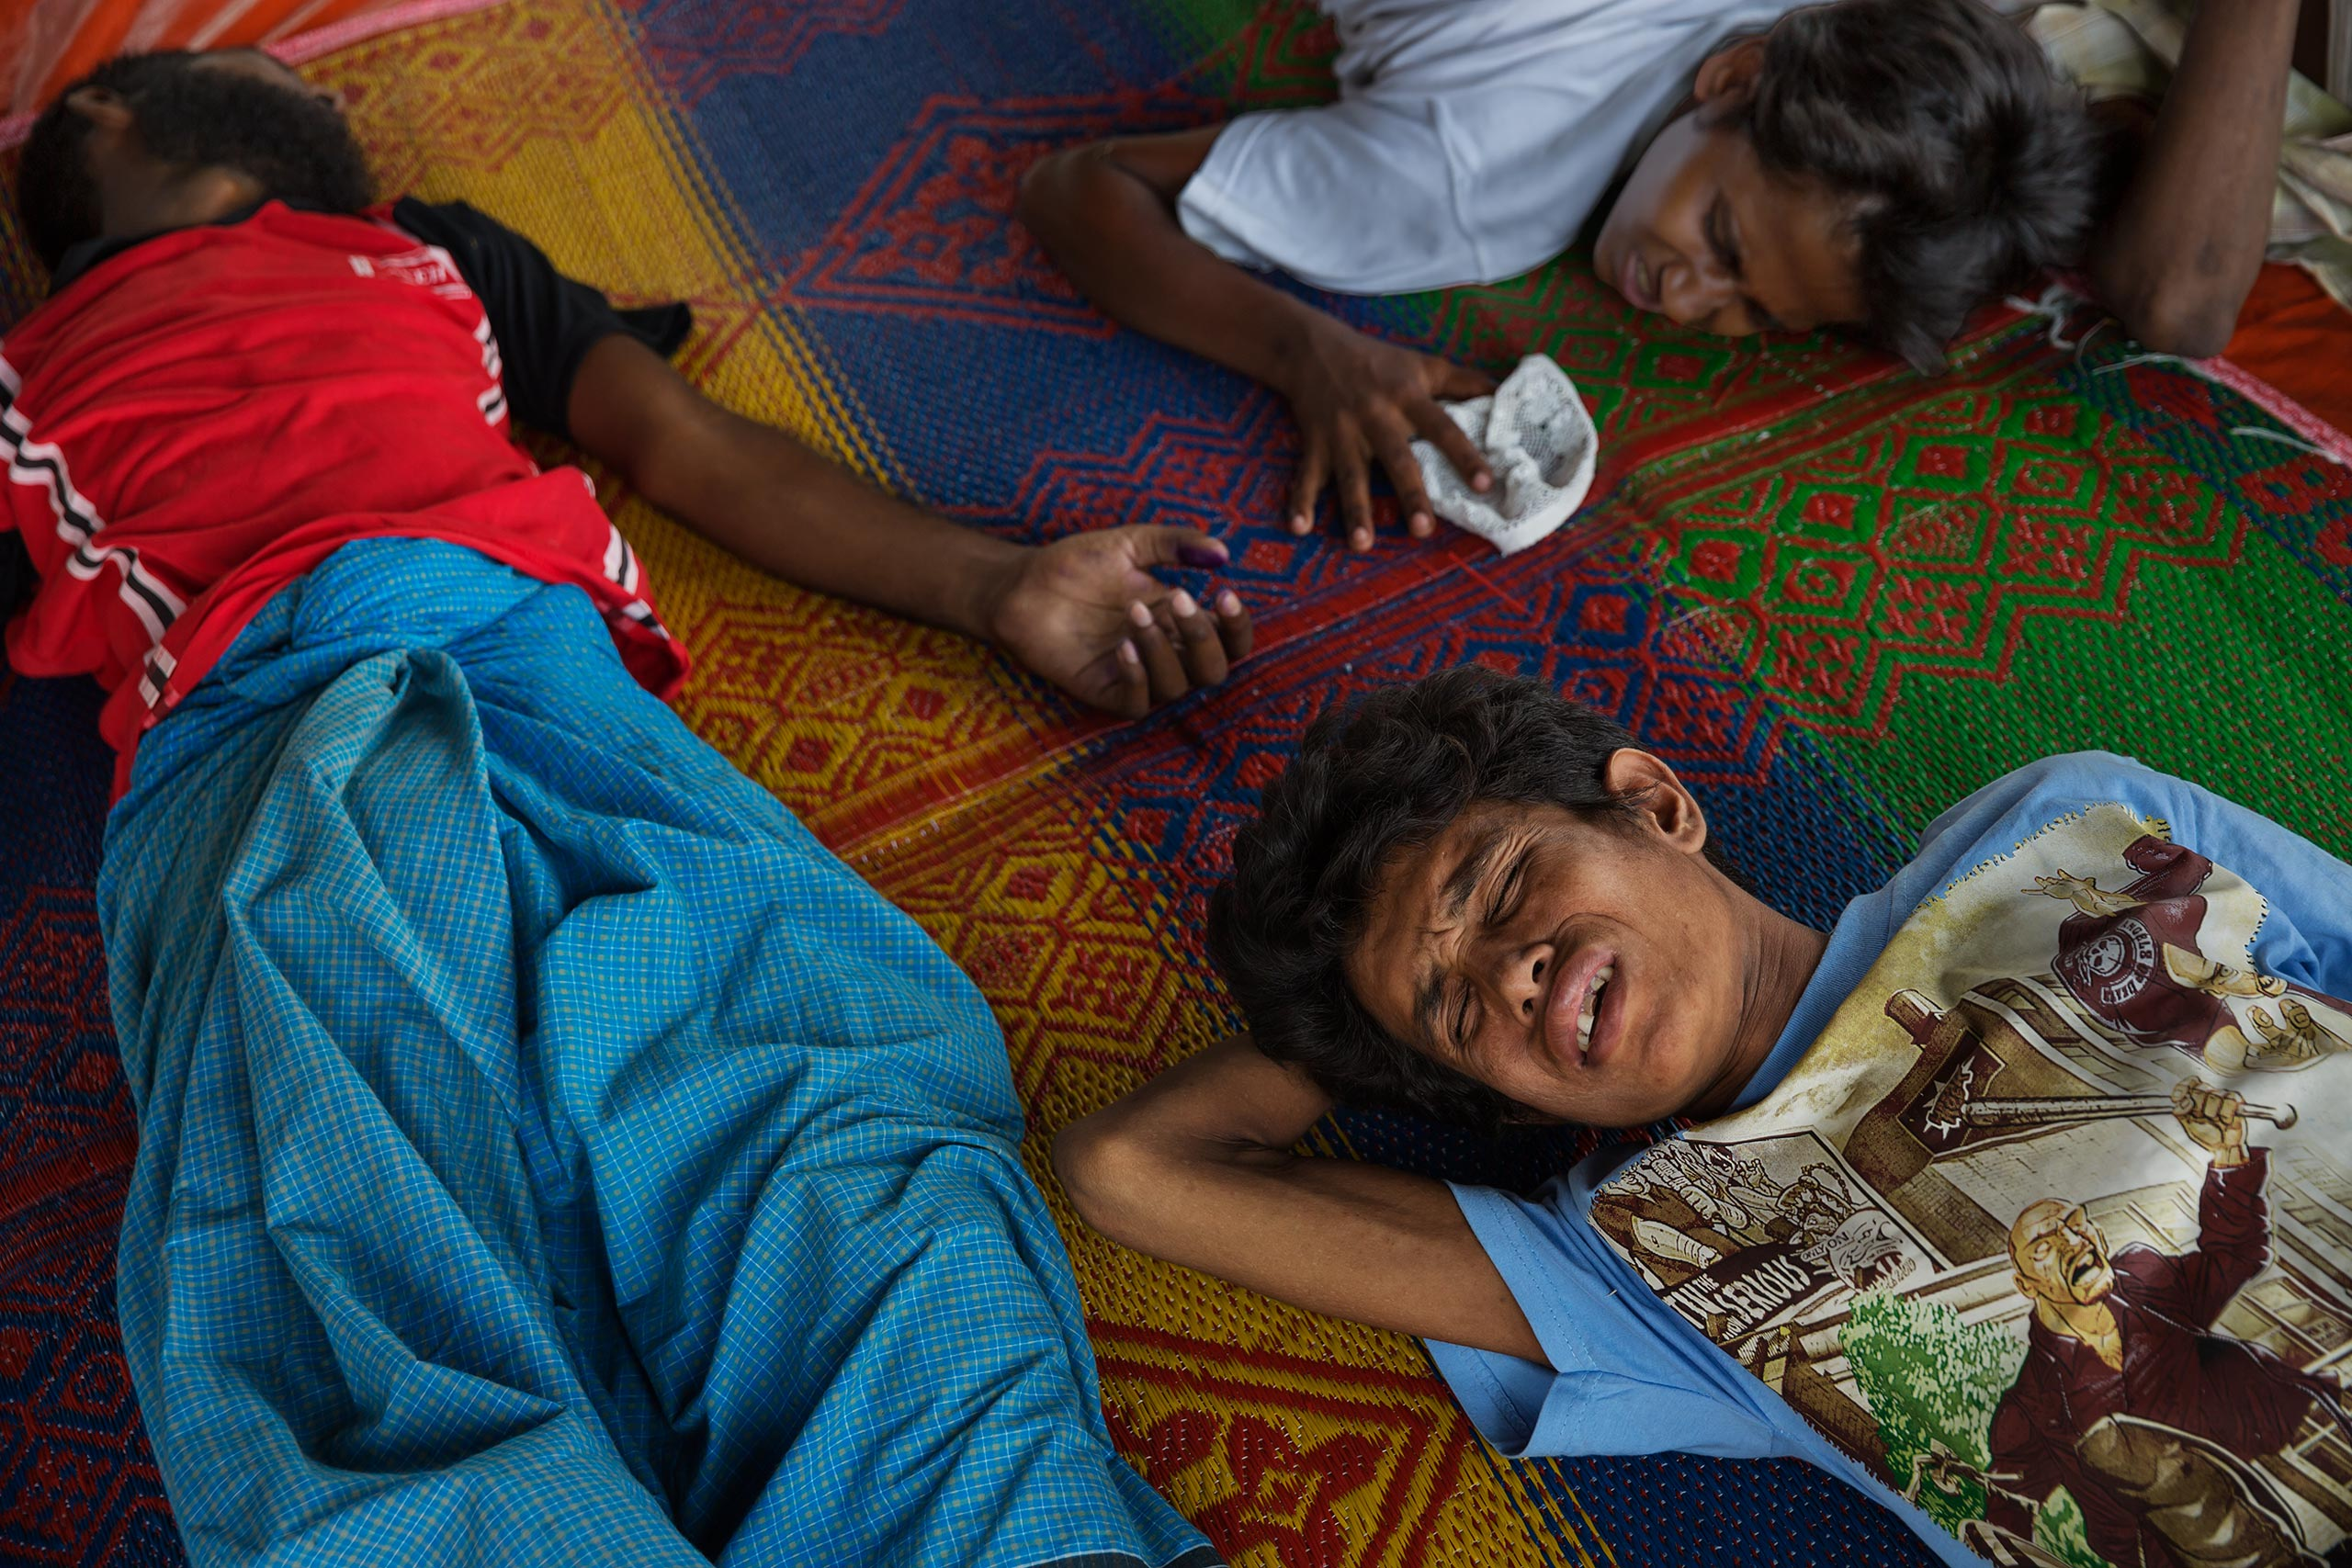 Refugees rest at a camp in Bayeun, outside of Langsa, Indonesia. They reached Indonesia after months at sea off the coast of Southeast Asia.